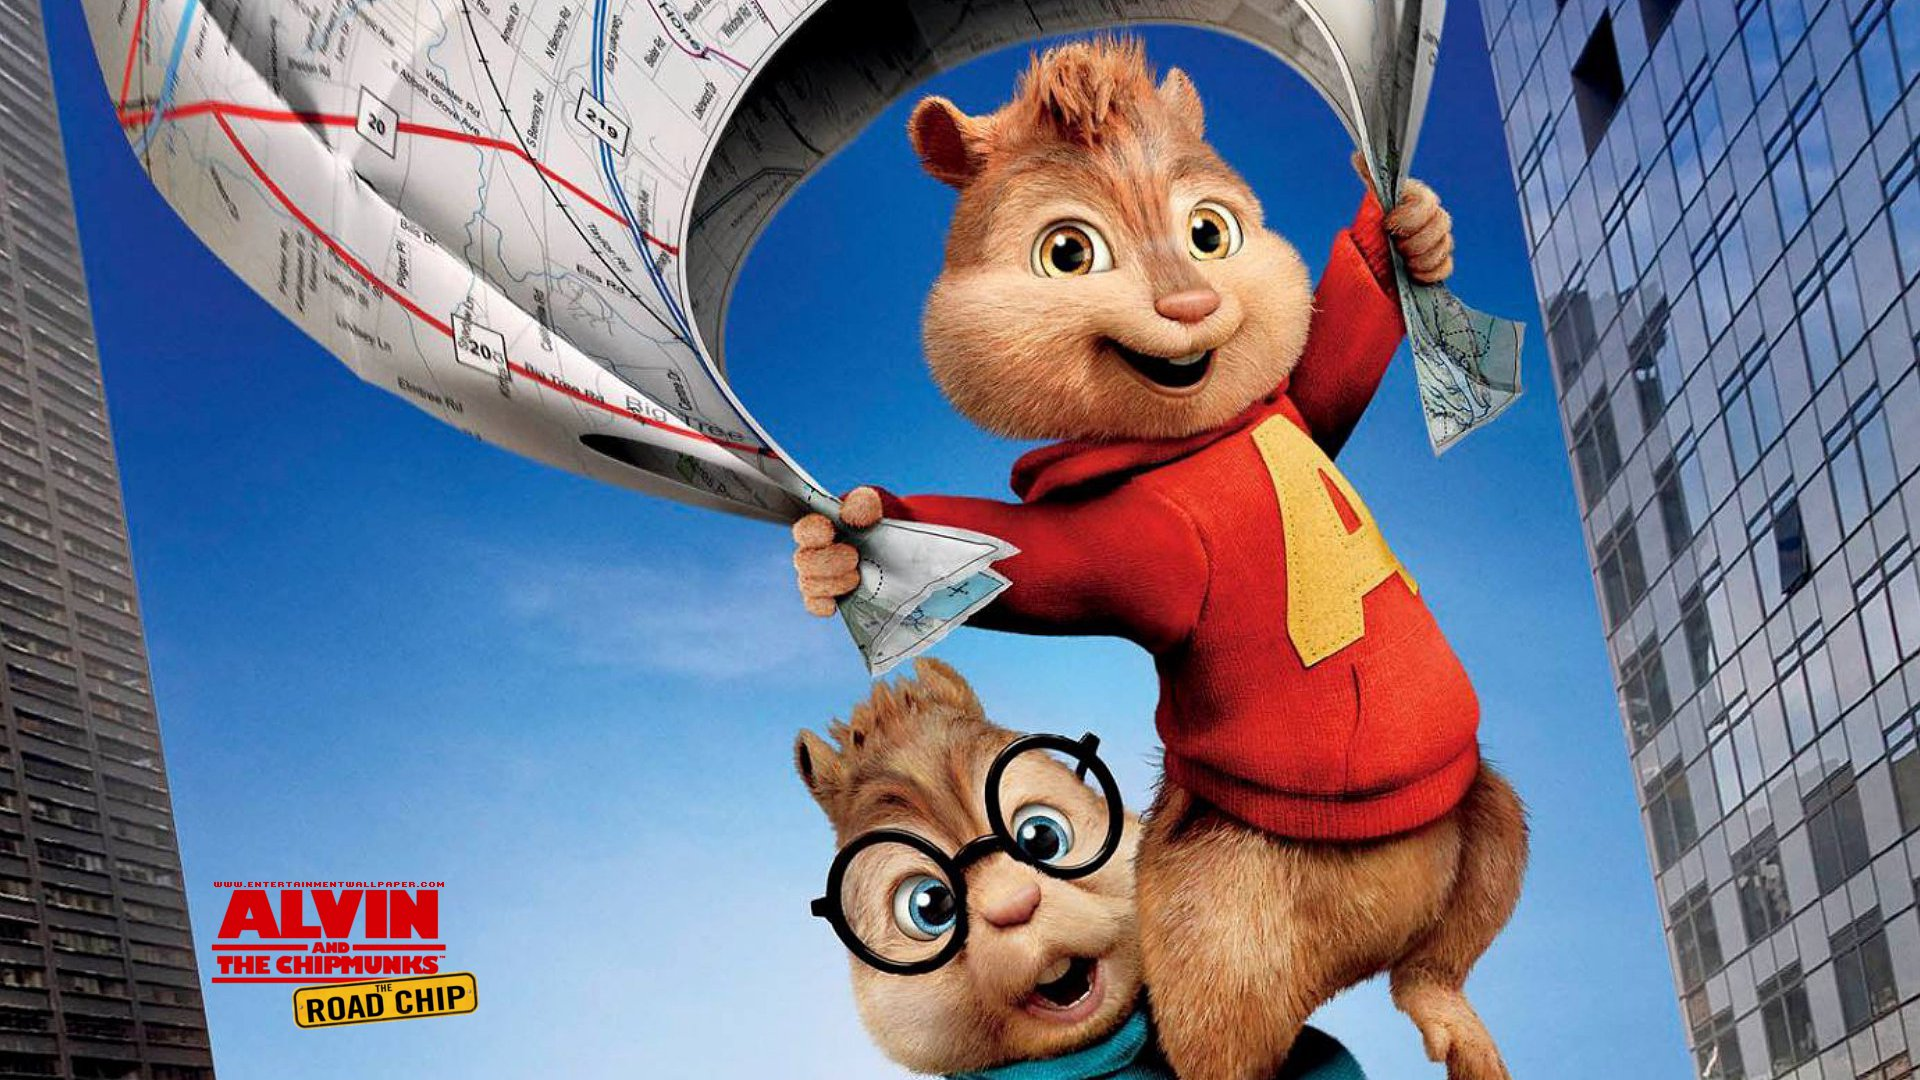 Hd Dark Quotes Wallpapers Hd Alvin And The Chipmunks Wallpaper Pixelstalk Net